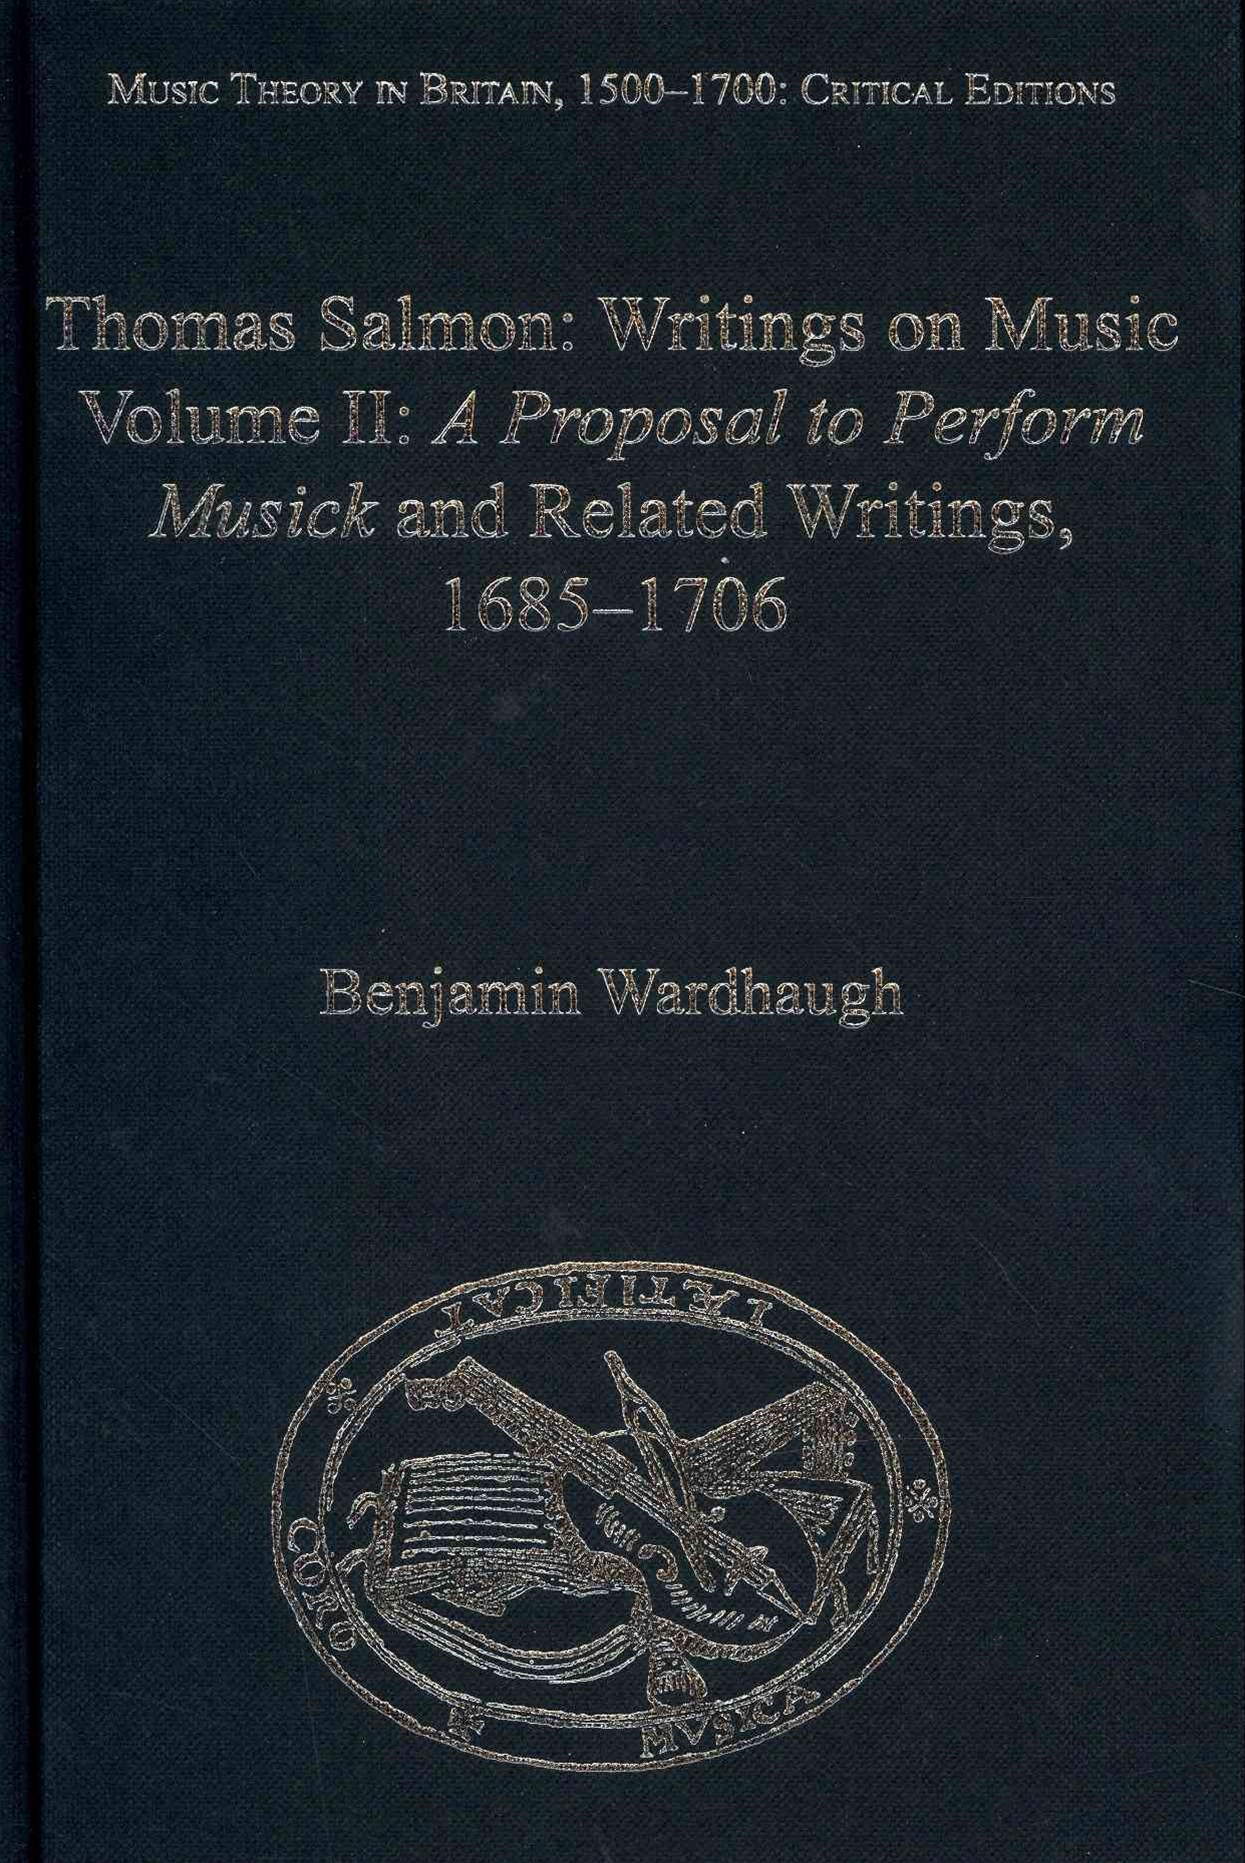 Thomas Salmon: A Proposal to Perform Musick and Related Writings, 1685-1706